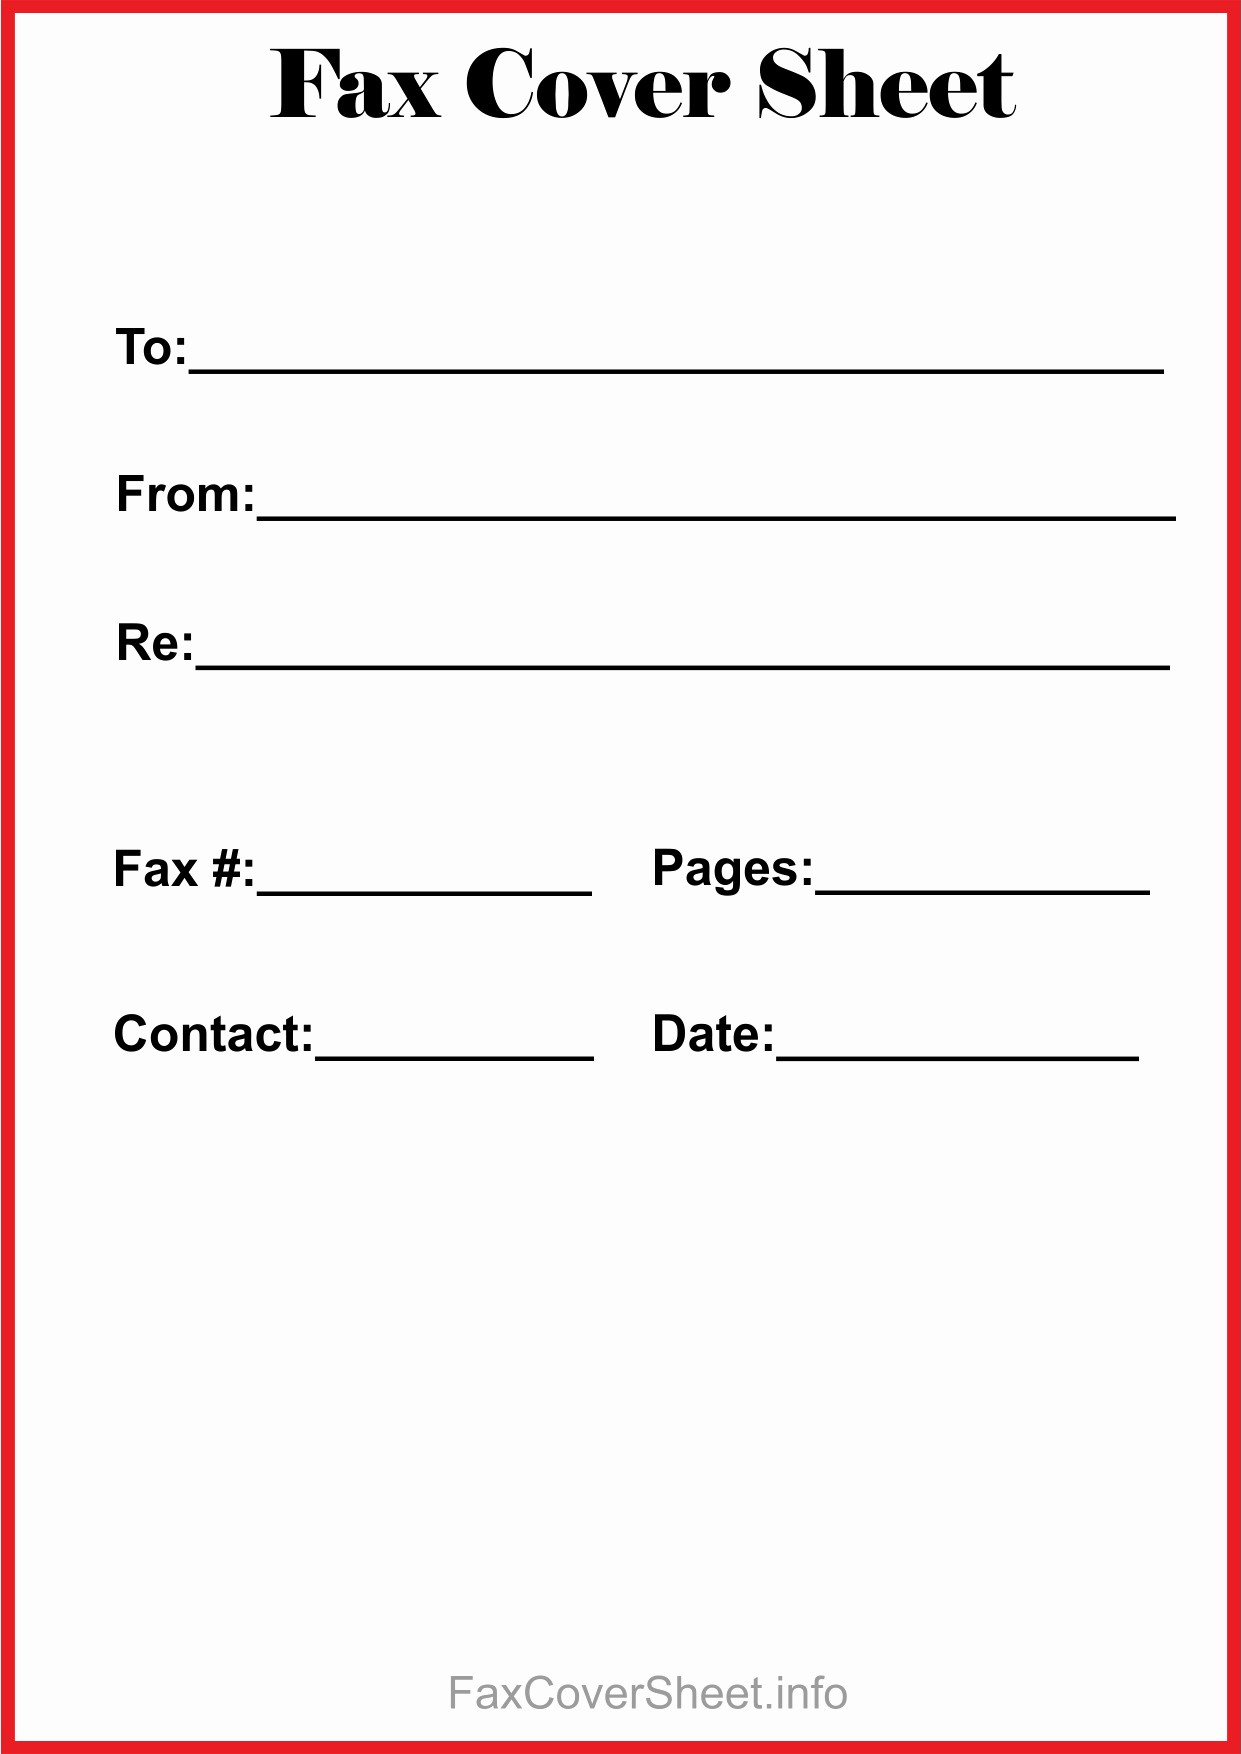 Cover Page for A Fax New Free Fax Cover Sheet Template Download